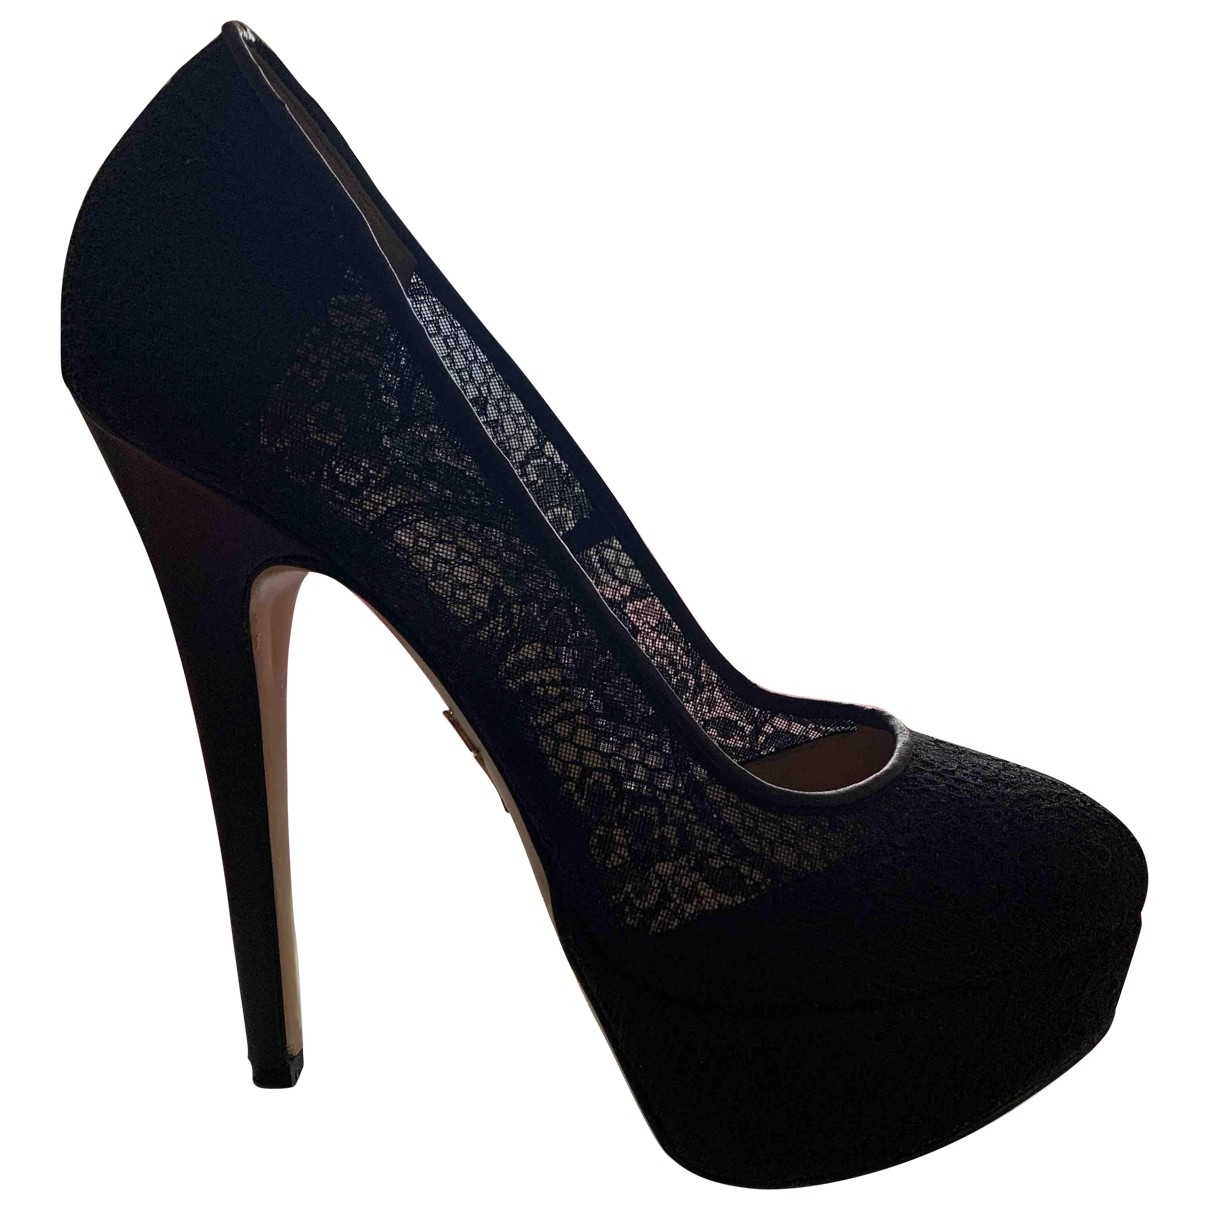 Charlotte Olympia Dolly Black Cloth Heels for Women 37 EU